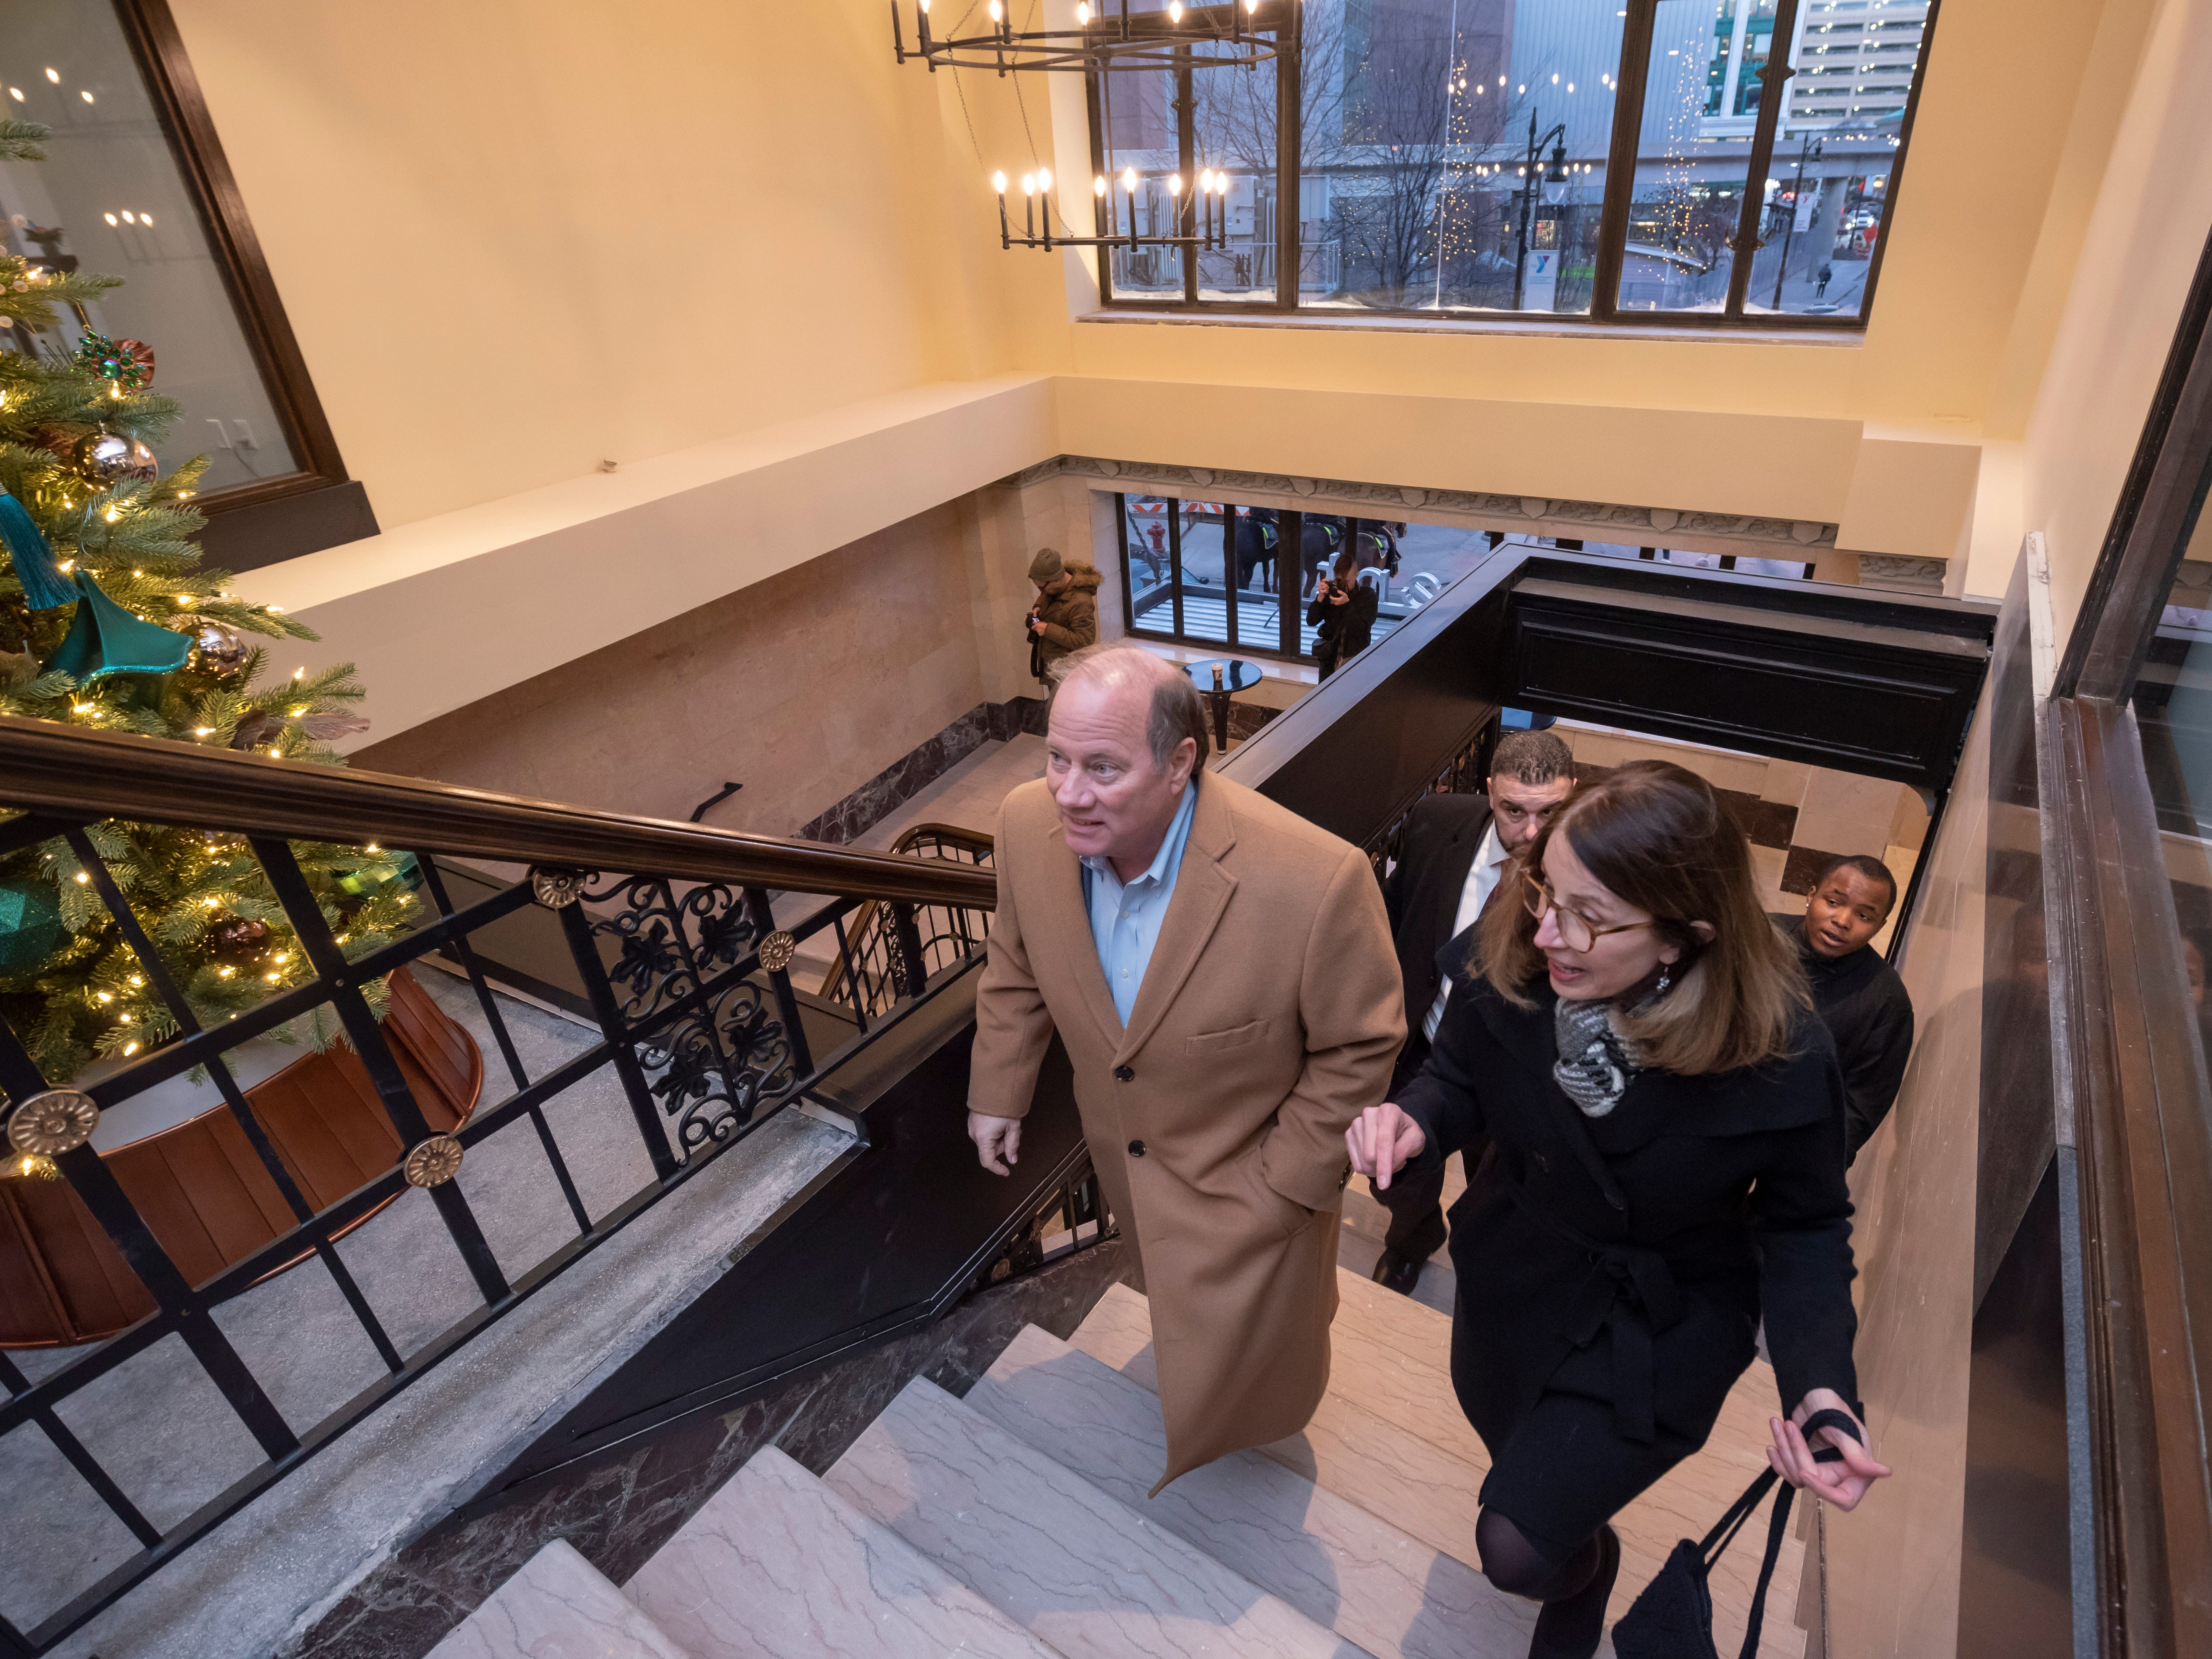 Detroit Mayor Mike Duggan, left, gets a tour from Stacy Fox, a founder and principal of the Roxbury Group, of the inside of the renovated Metropolitan building in Detroit.